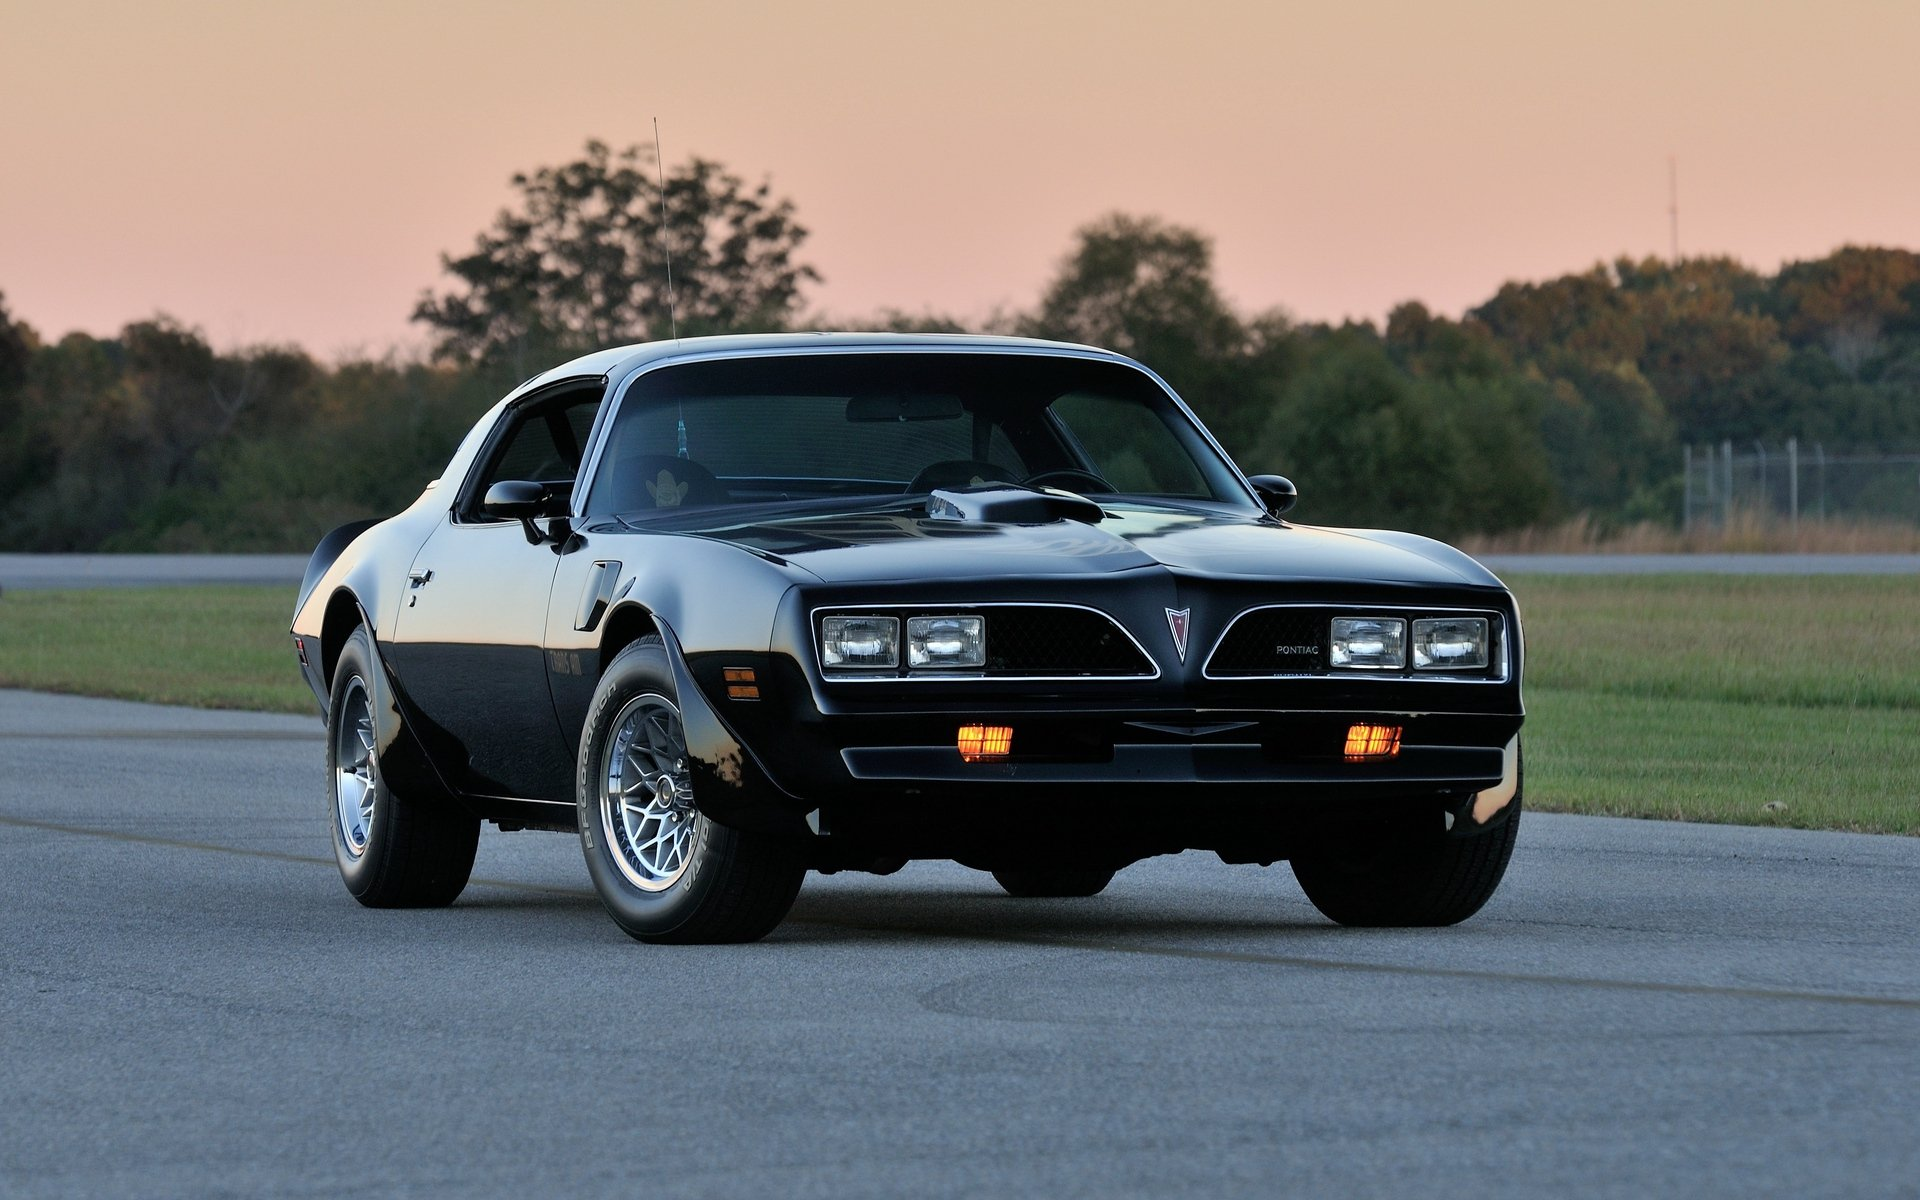 Download wallpaper 1920x1200 pontiac firebird trans am ws6 1920x1200